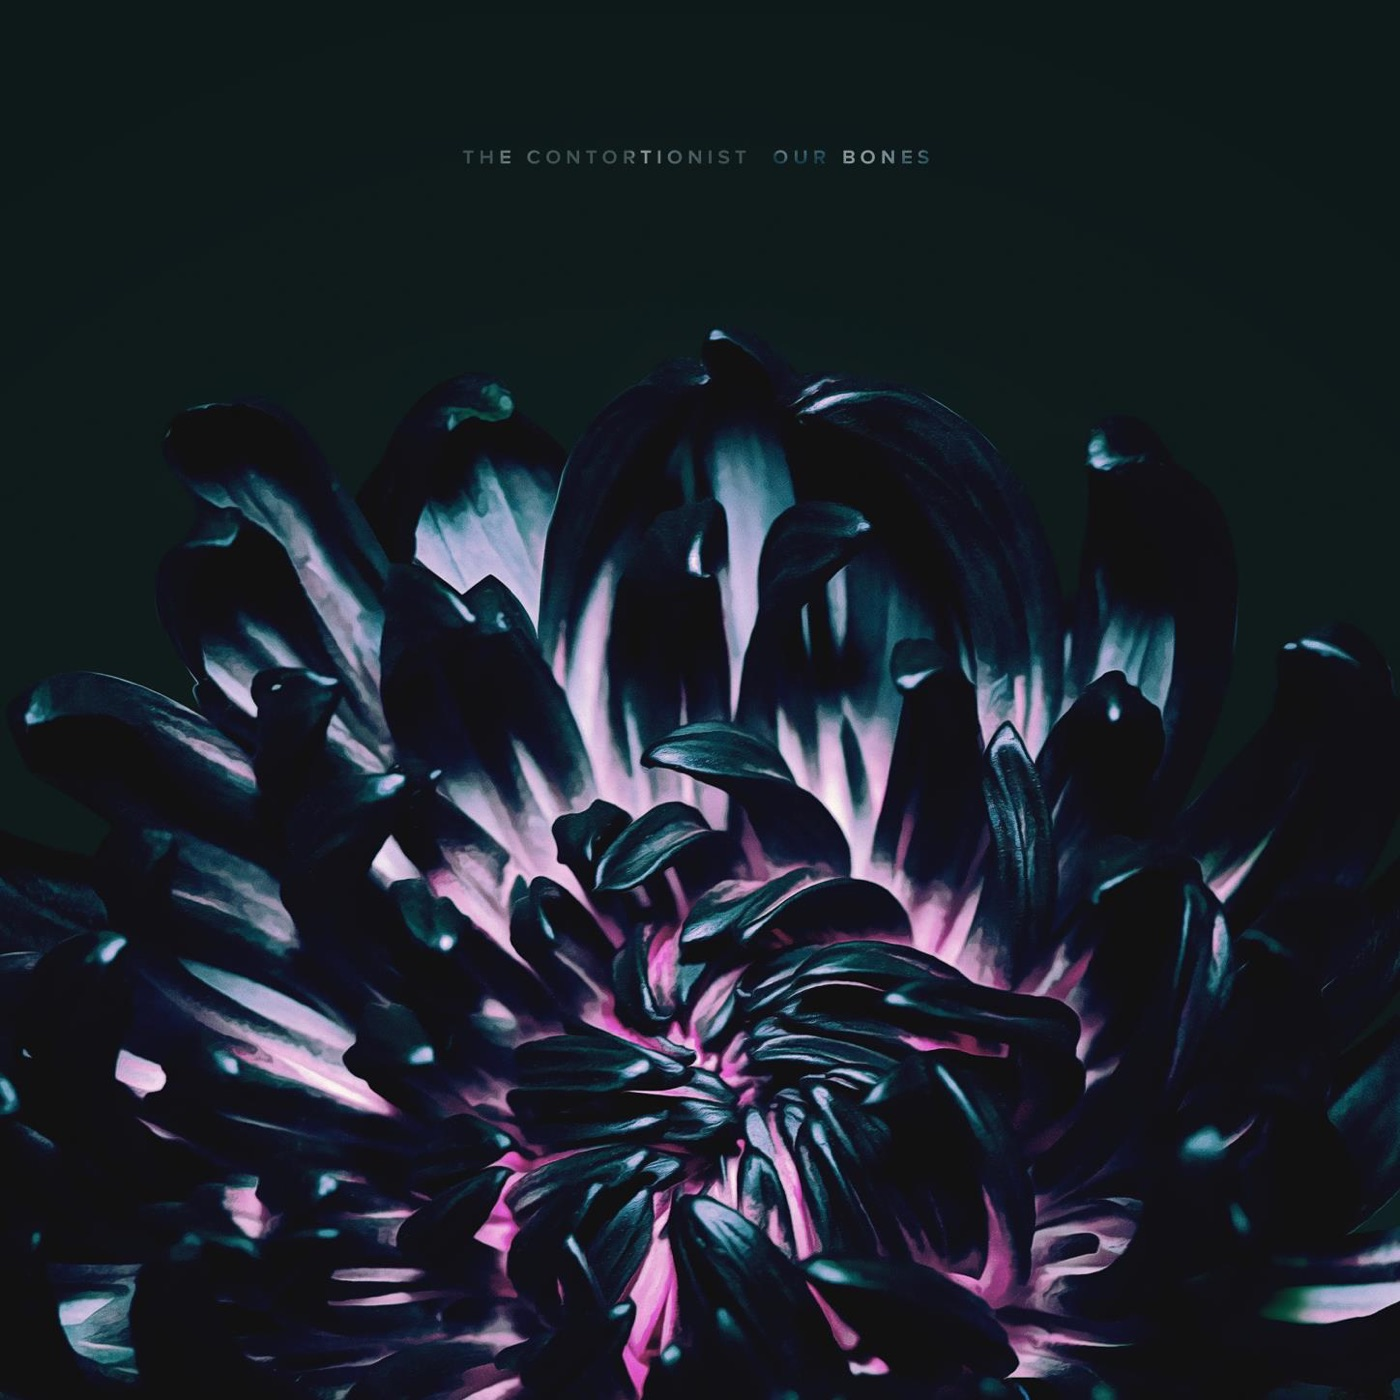 The Contortionist - Early Grave [Single] (2019)